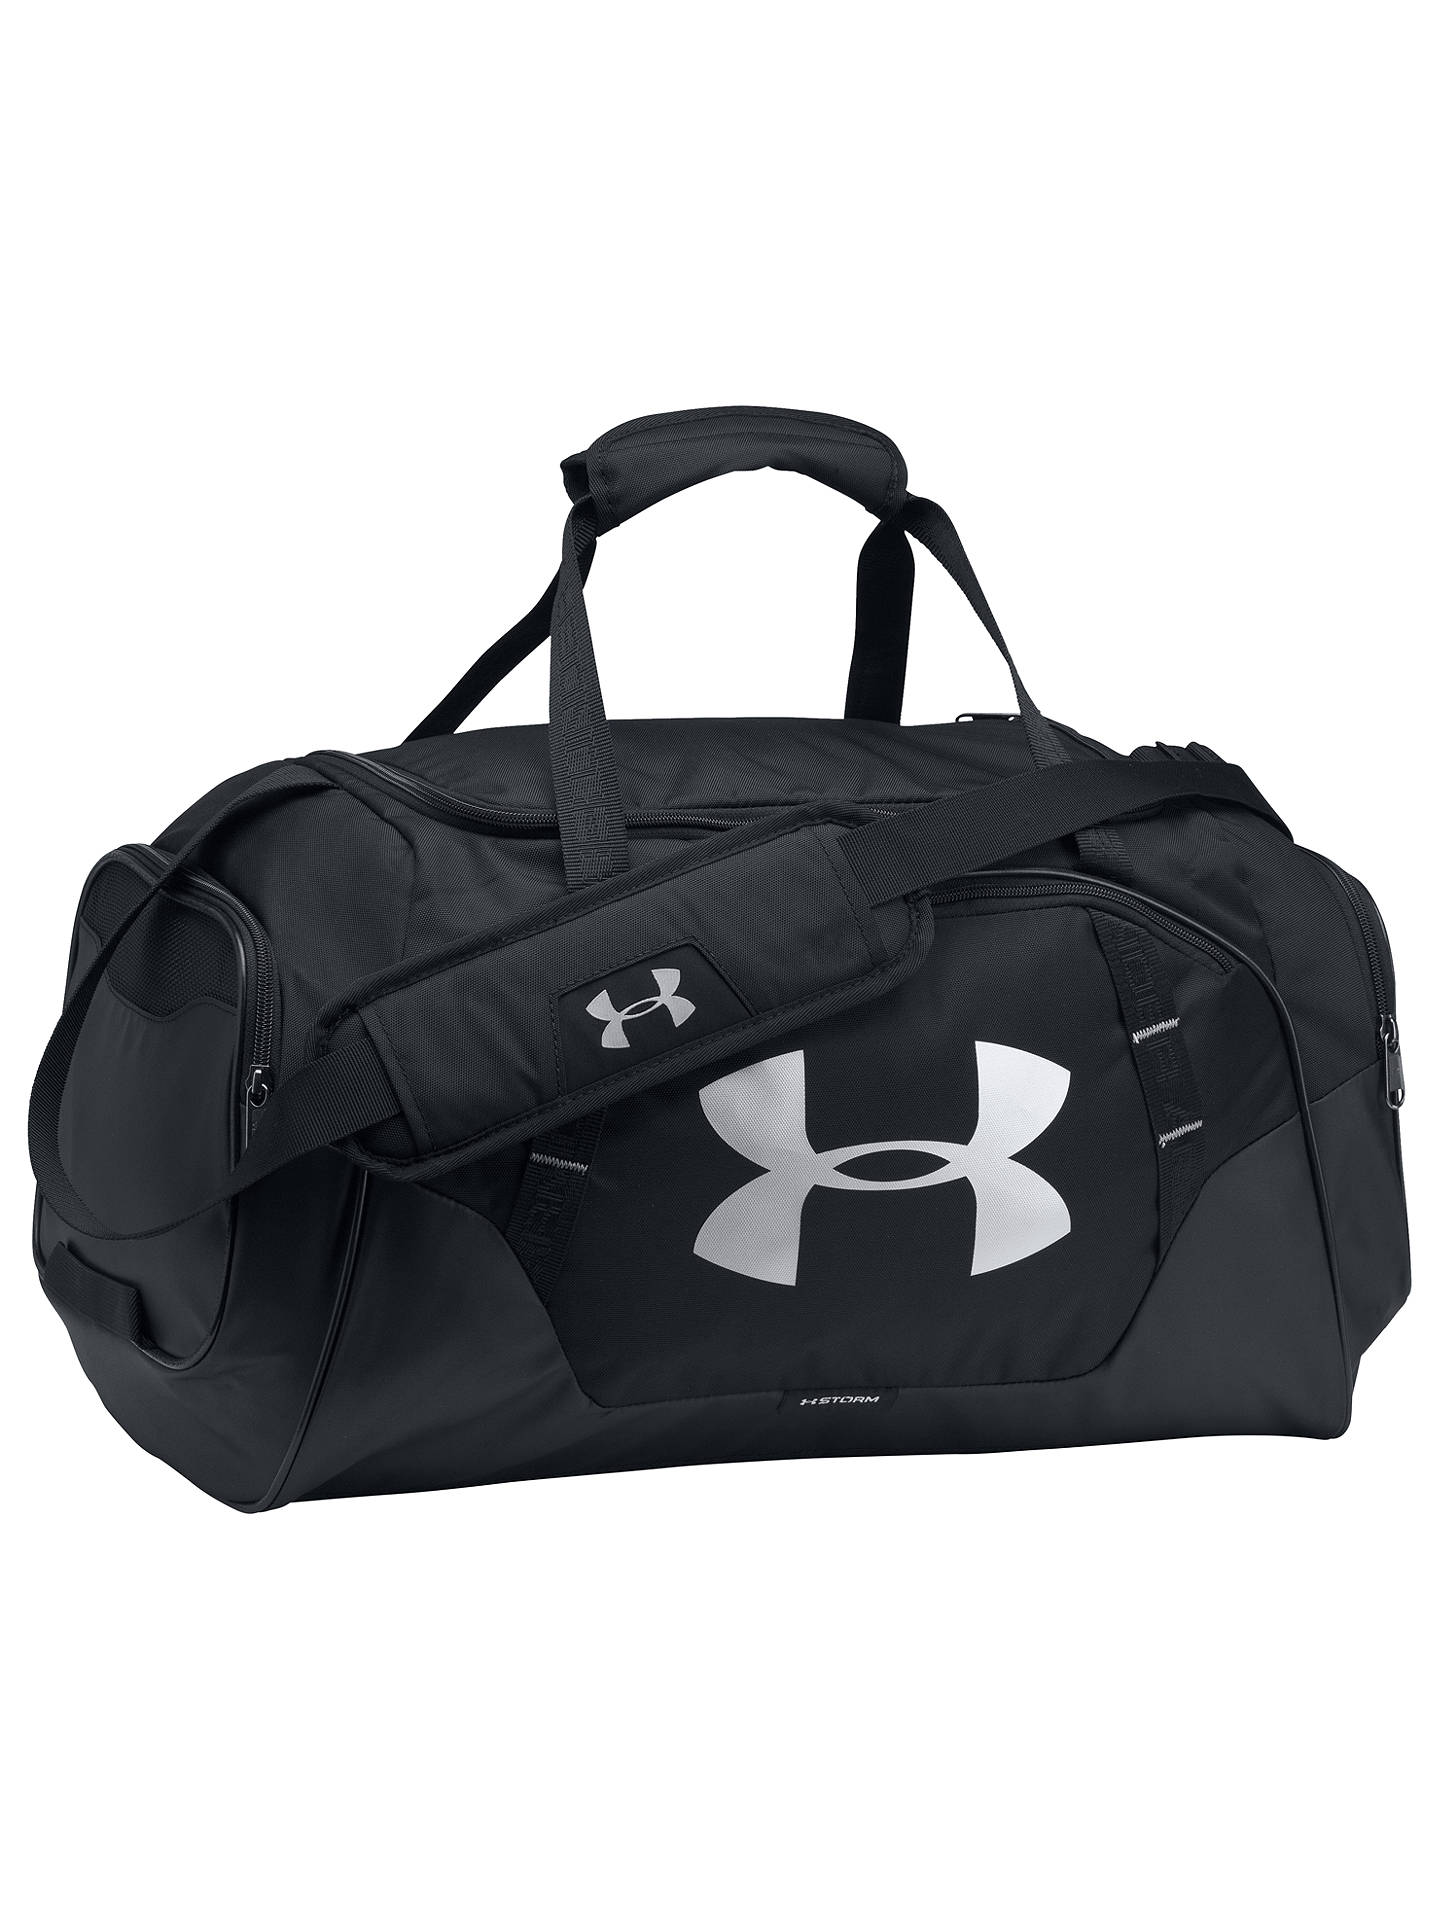 dd6d94ec8d Under Armour Storm Undeniable 3.0 Small Duffle Bag at John Lewis ...